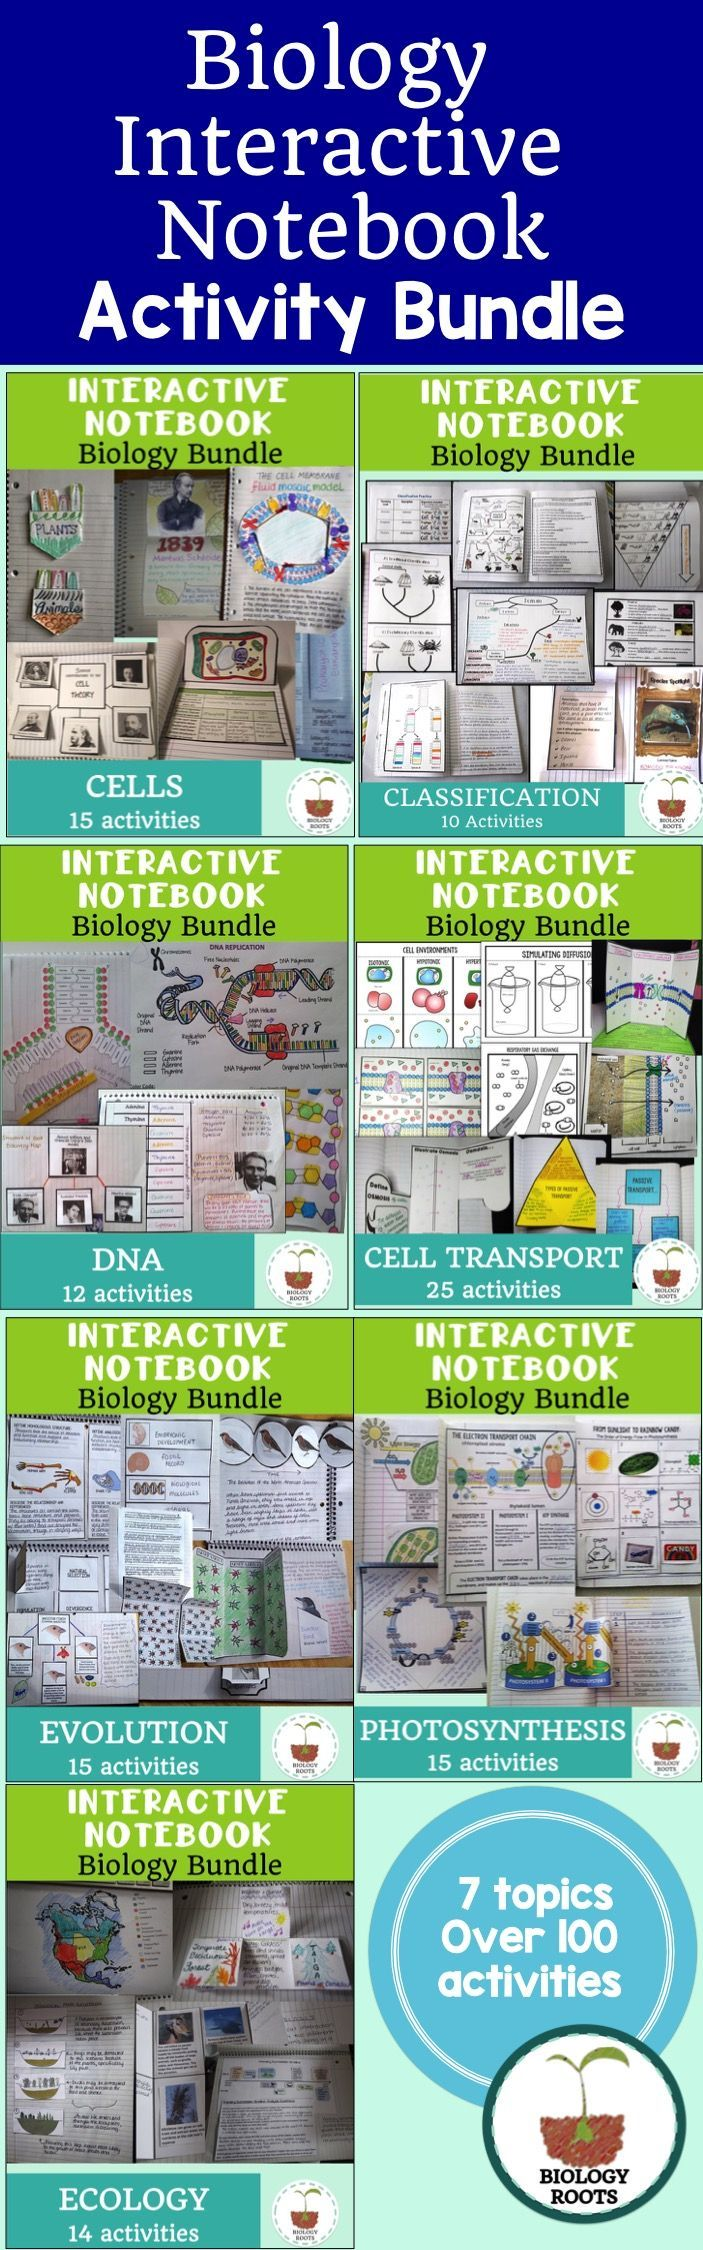 Biology Interactive Notebook Bundle- Over 100+ activities for your biology class interactive notebook. INB topics include evolution, ecology, cells, cell transport, photosynthesis and DNA.